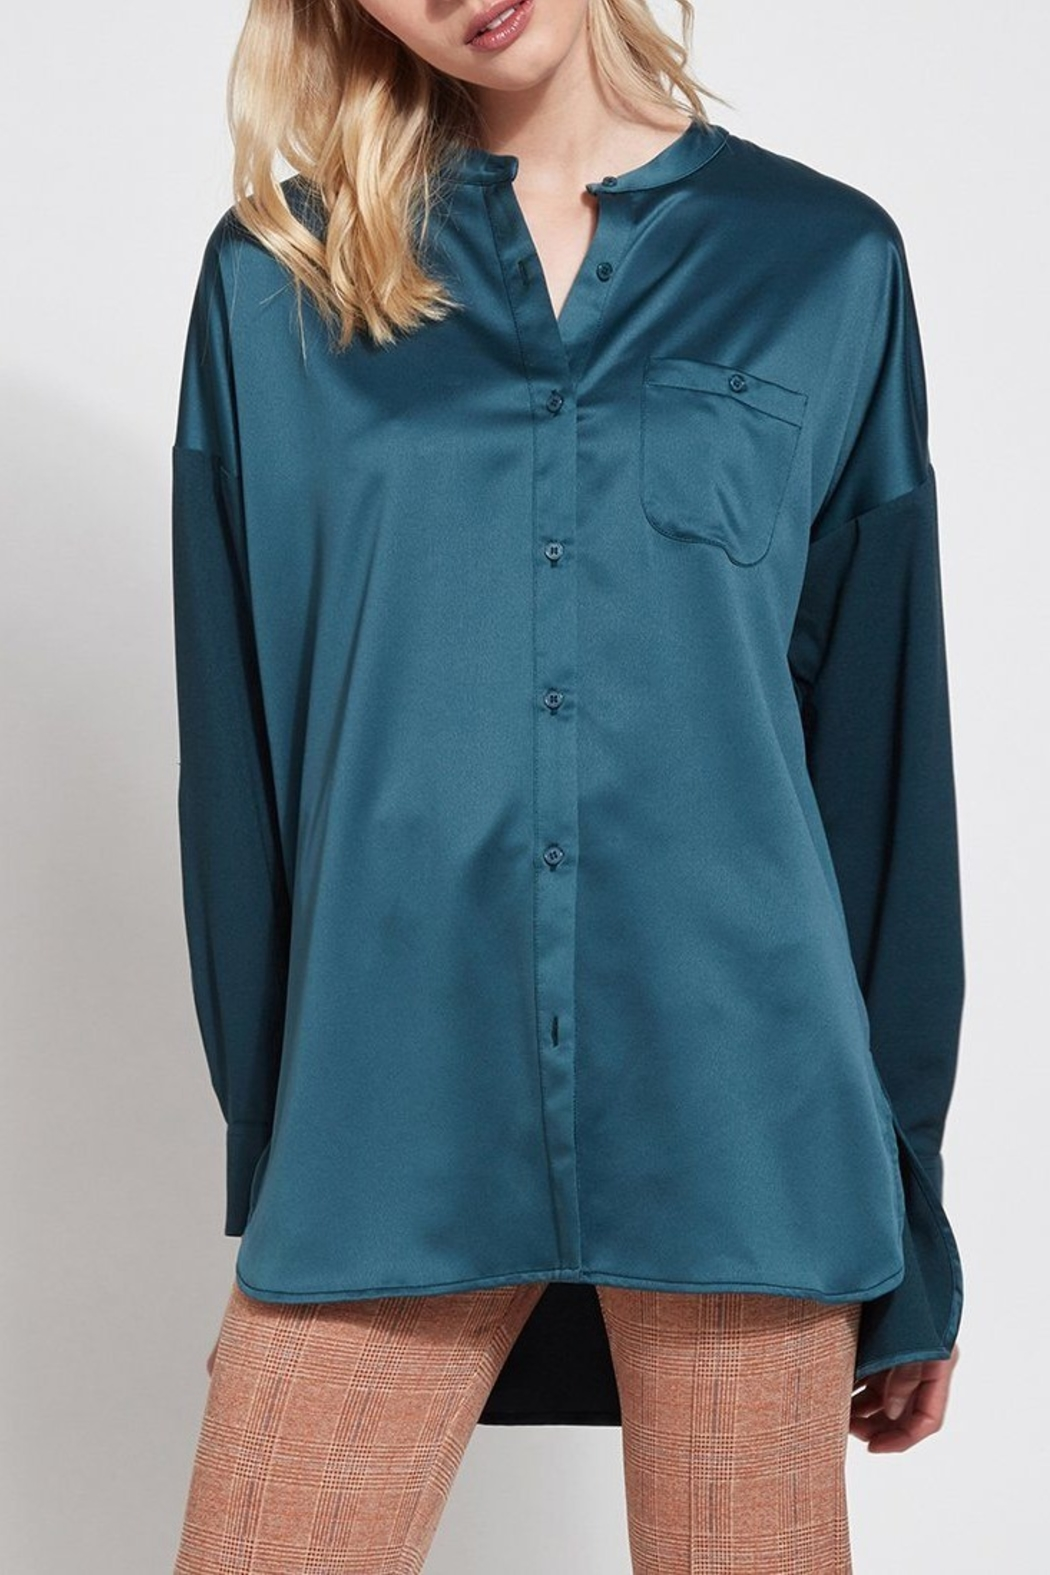 Lyssé Lysse Oversized Satin Blouse - Main Image